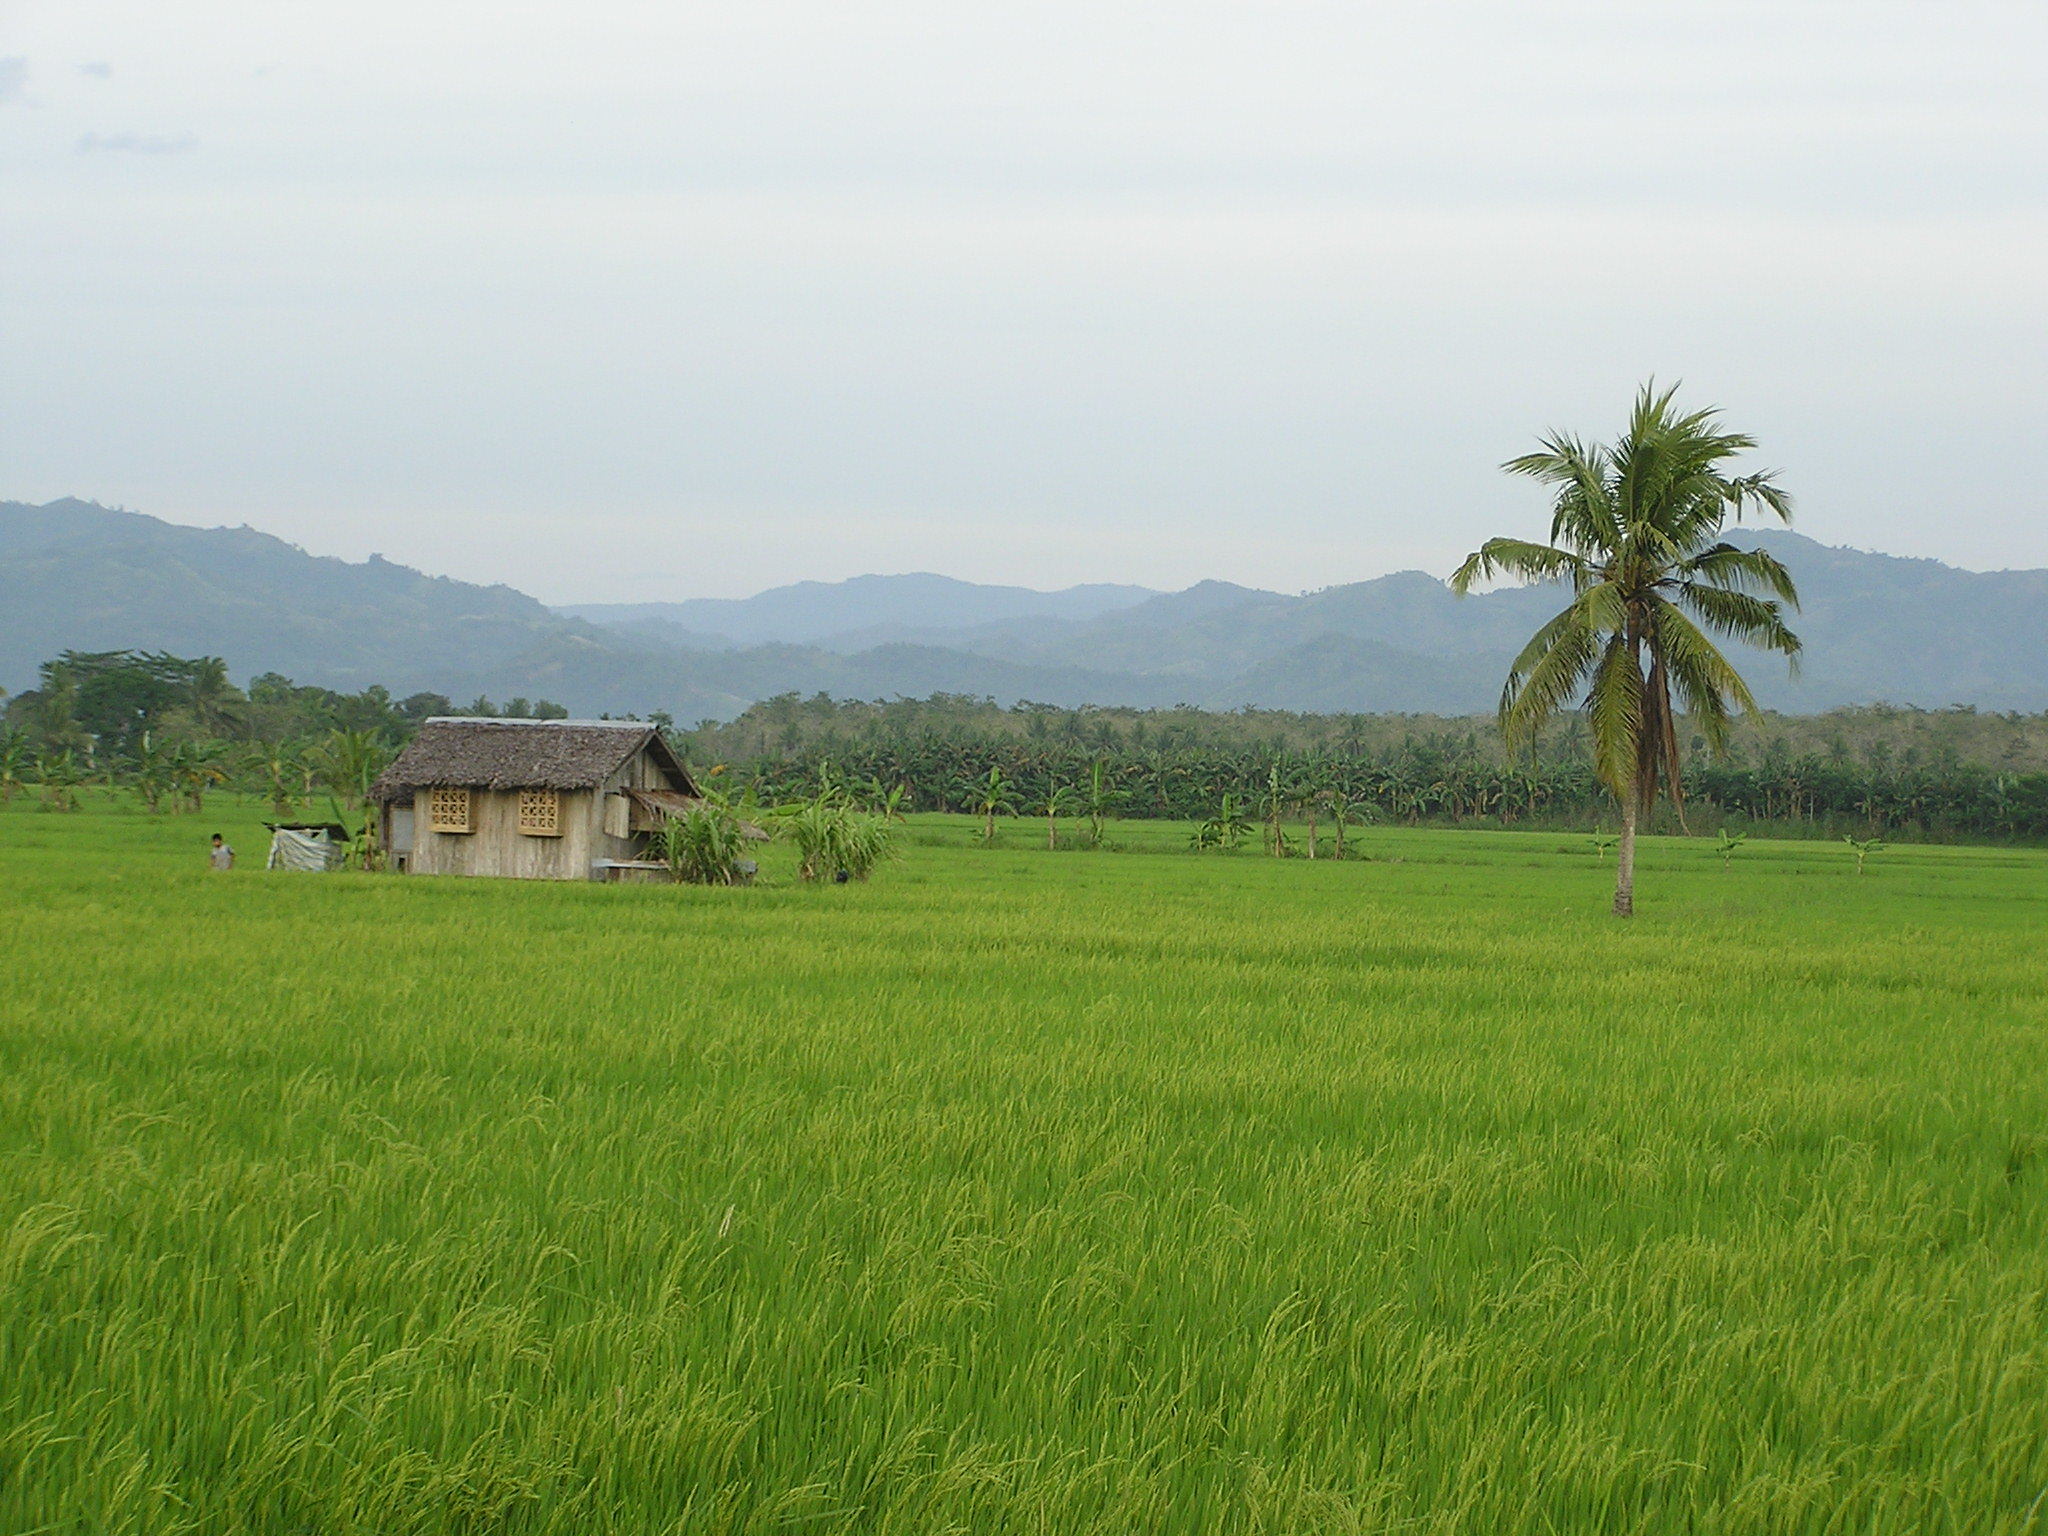 Simple living in a tropical climate.